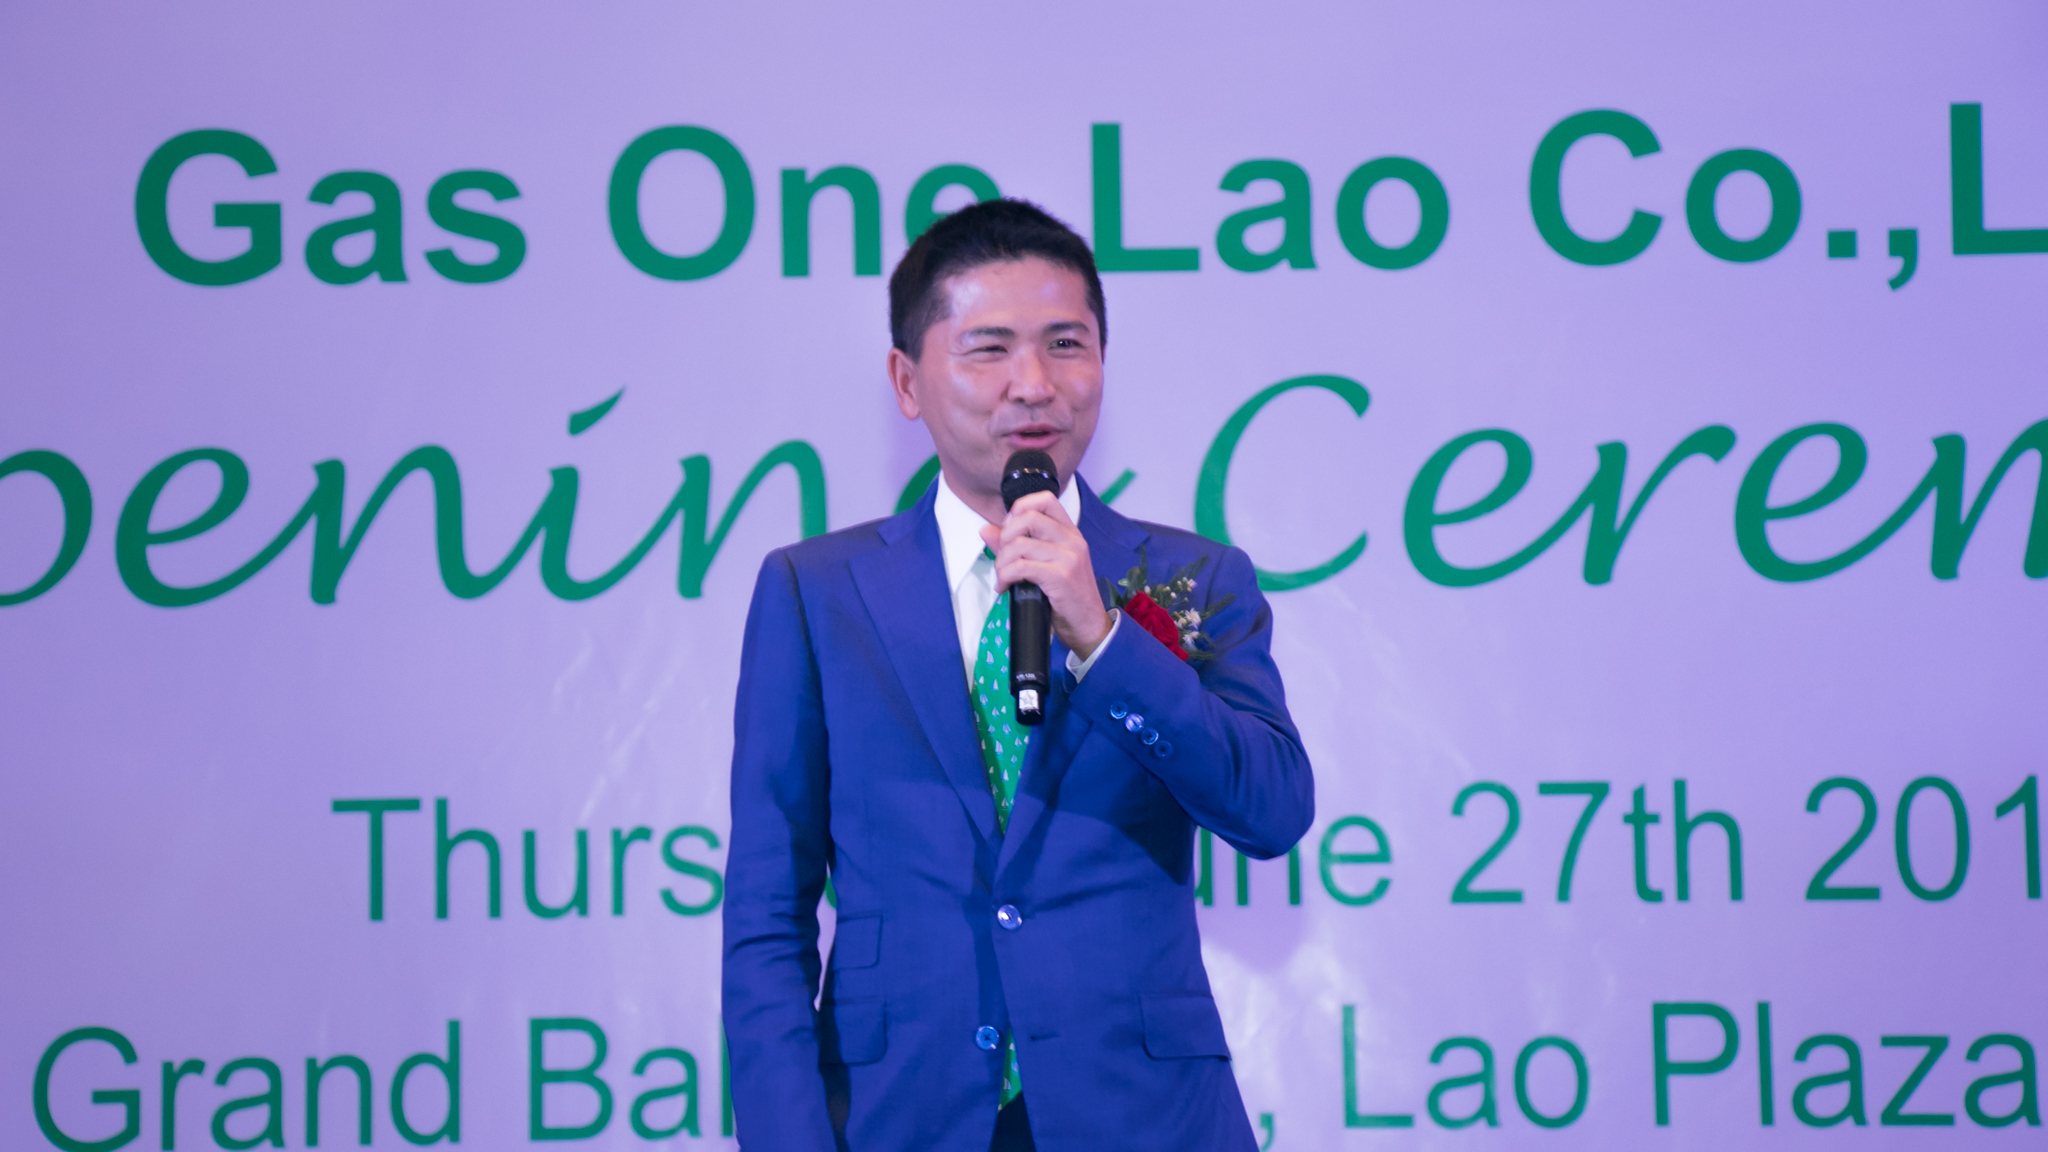 Gas One Lao Co., Ltd. Grand Opening Ceremony